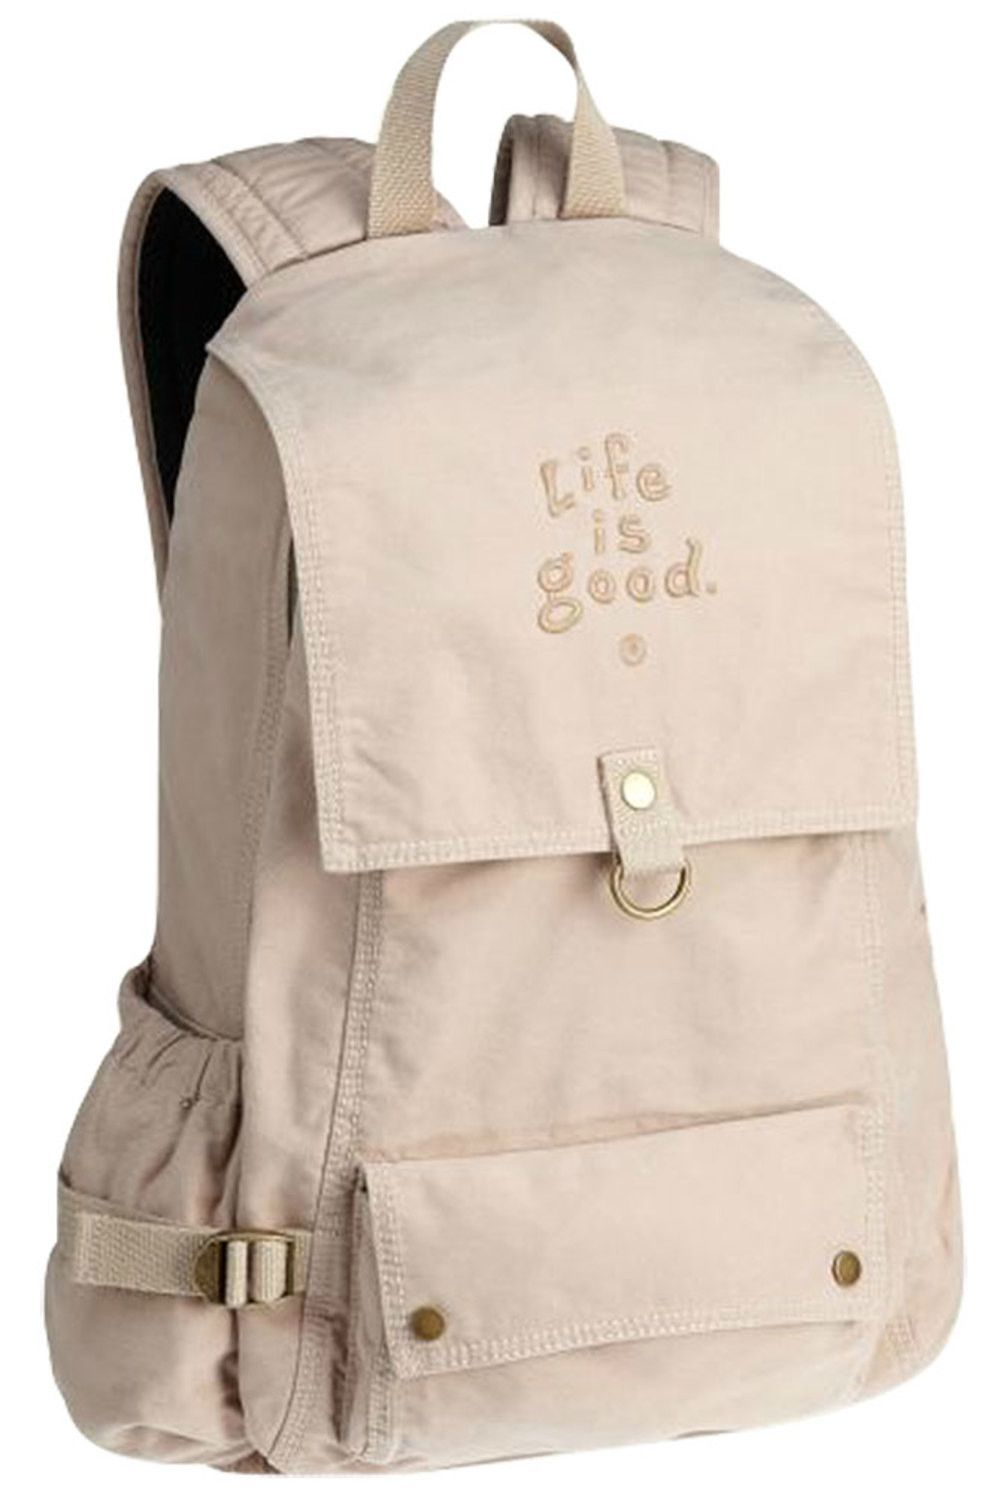 Essentials Backpack by Life is good